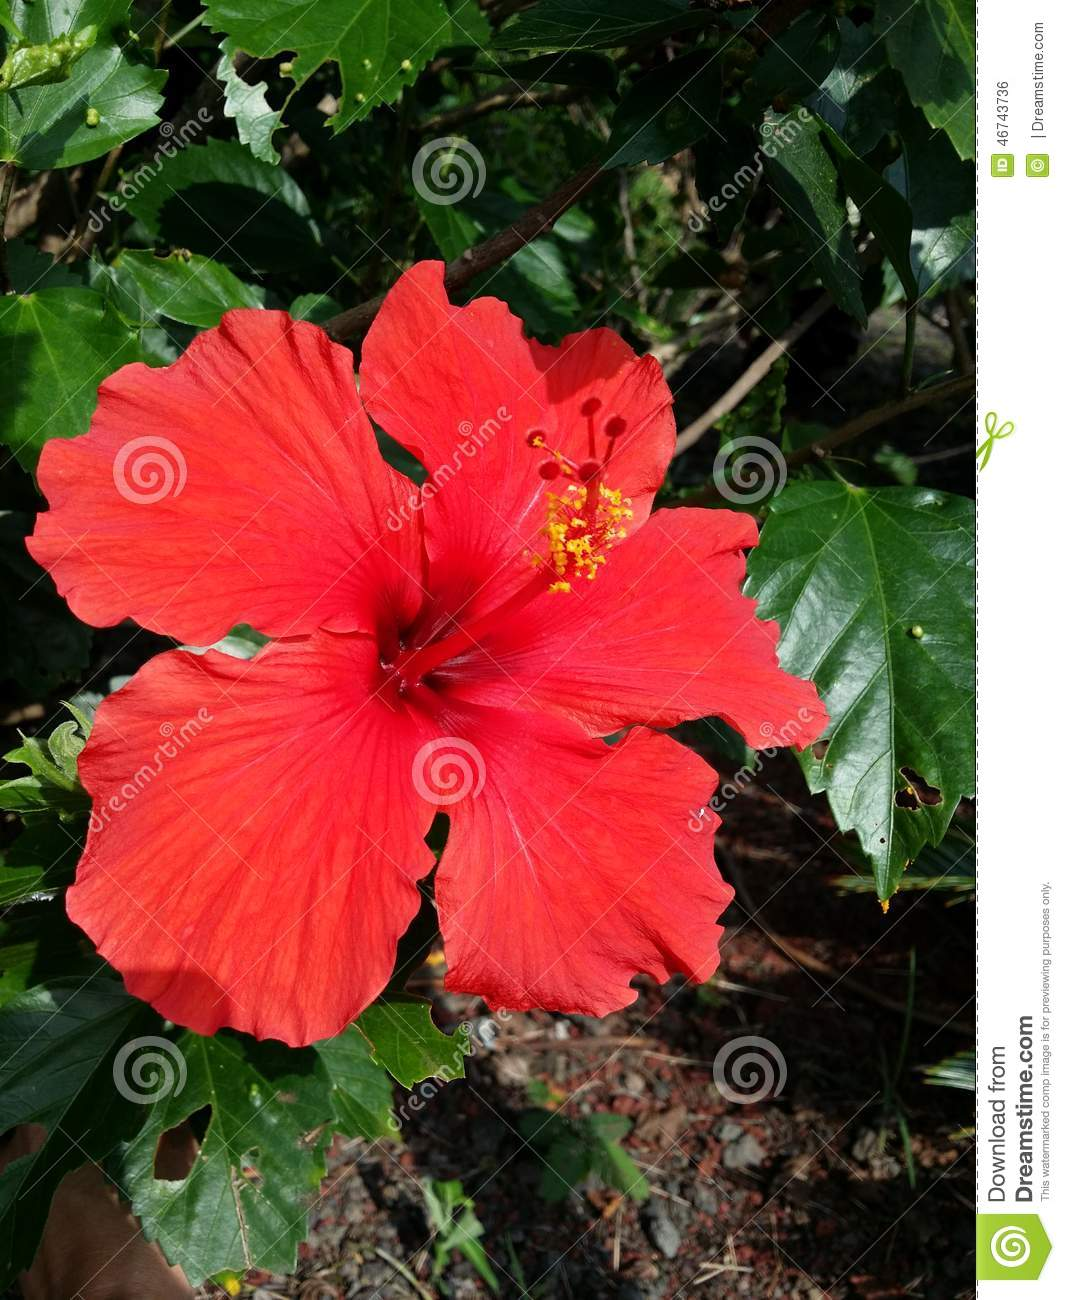 description tahiti tropical flower - photo #48